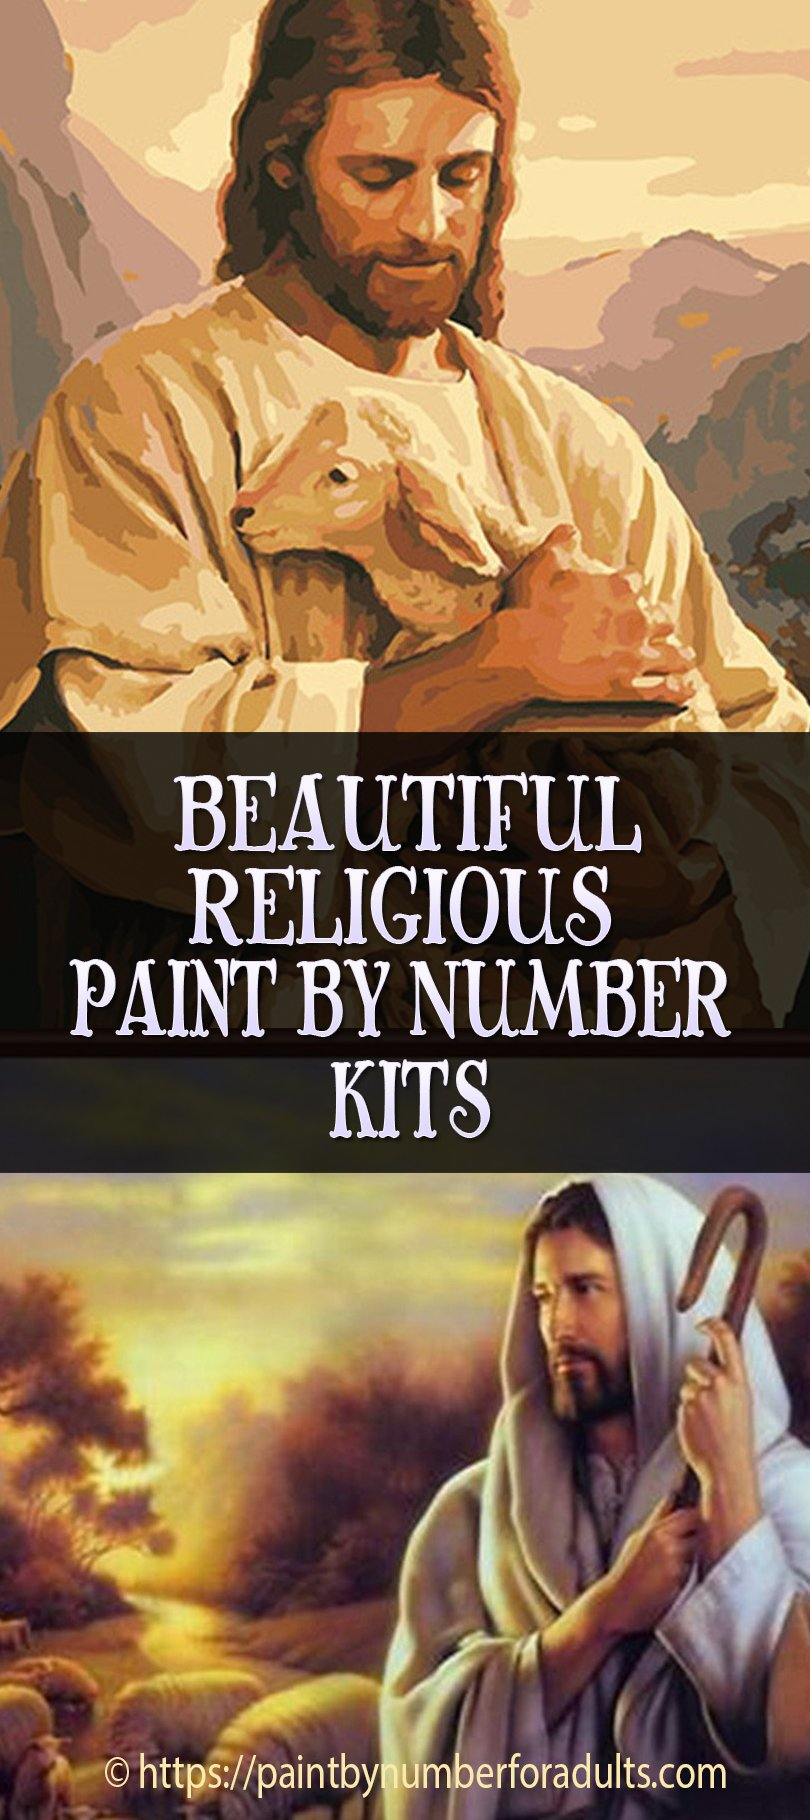 Religious Paint By Number Kits